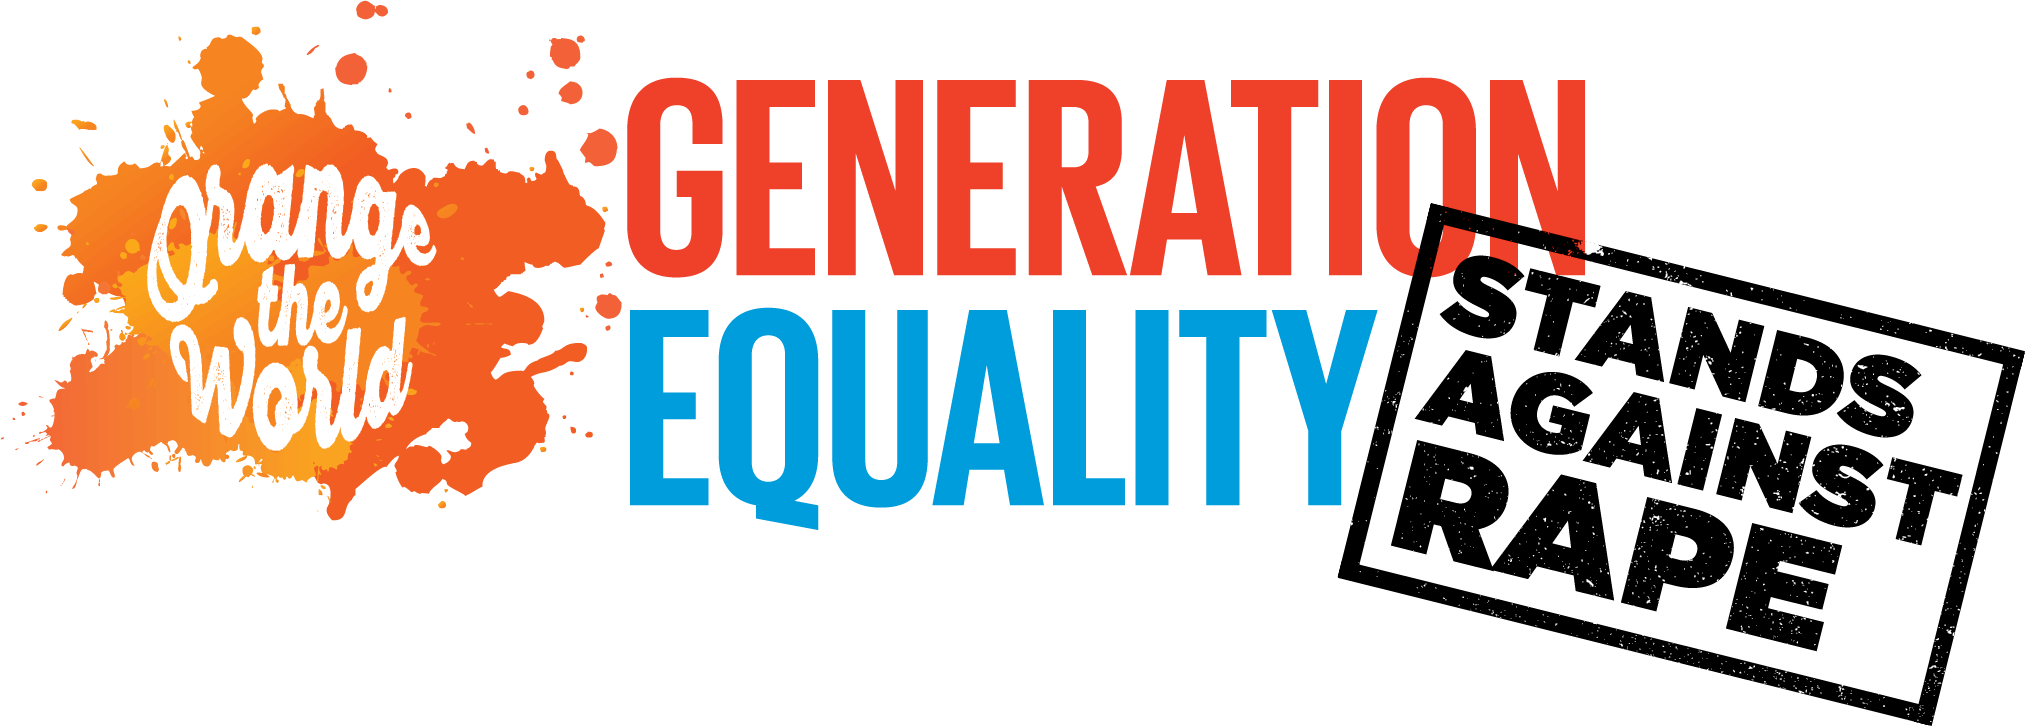 16 Days of Activism against Gender-Based Violence 2019 - Generation Equality stands against rape